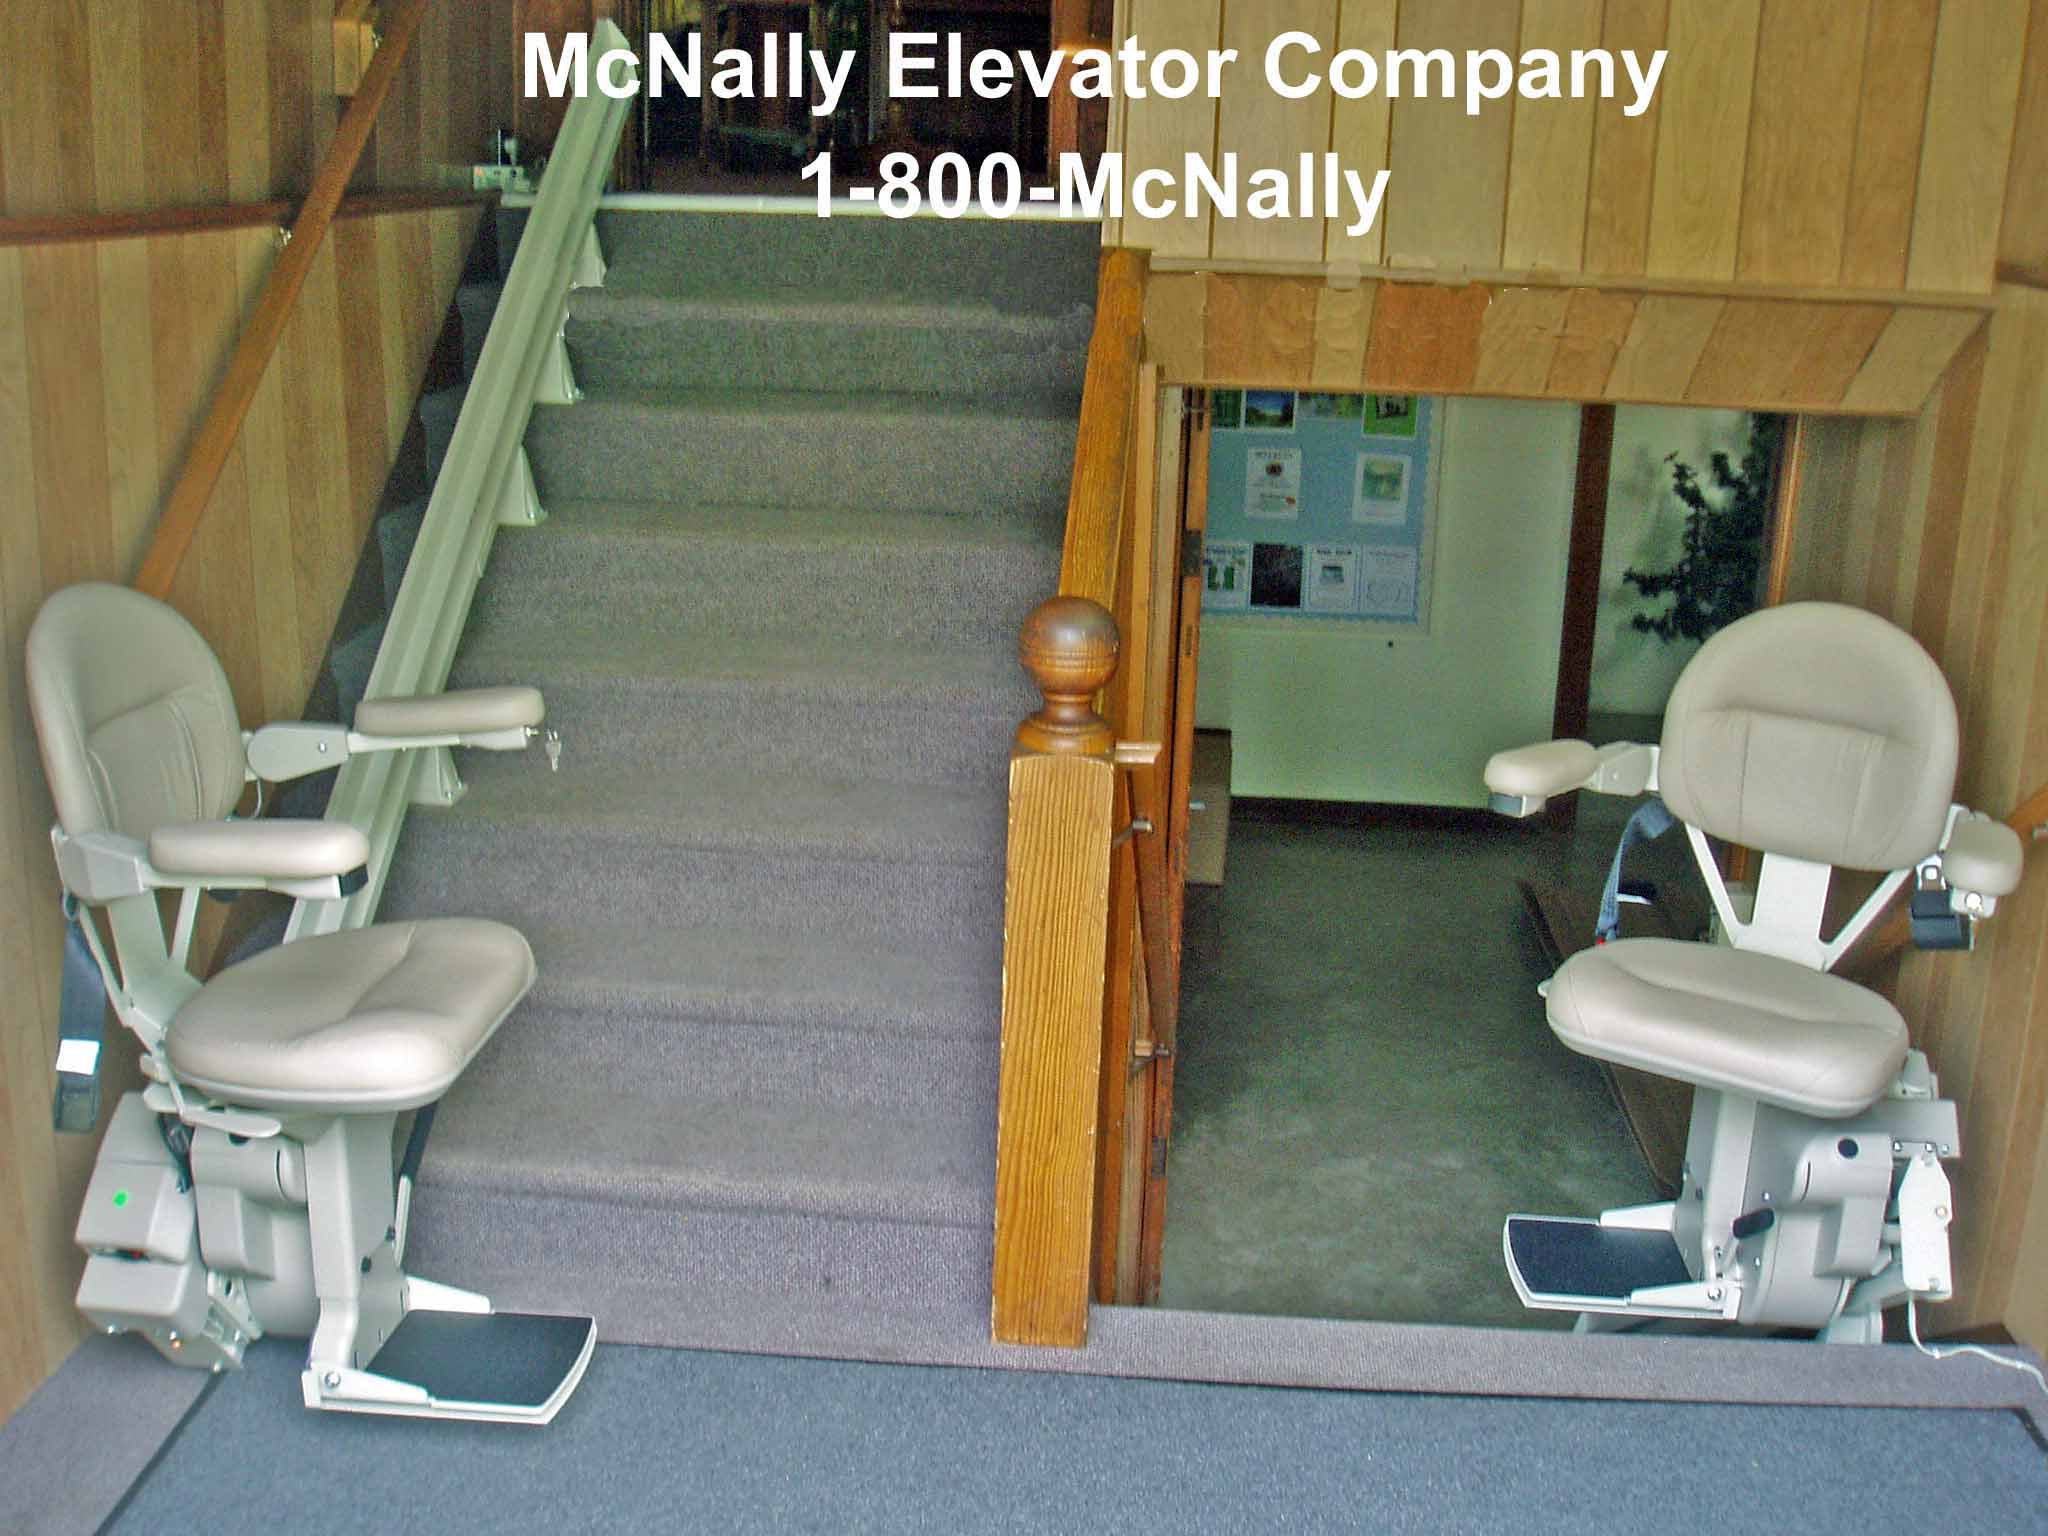 Two Stairlifts in Church.jpg